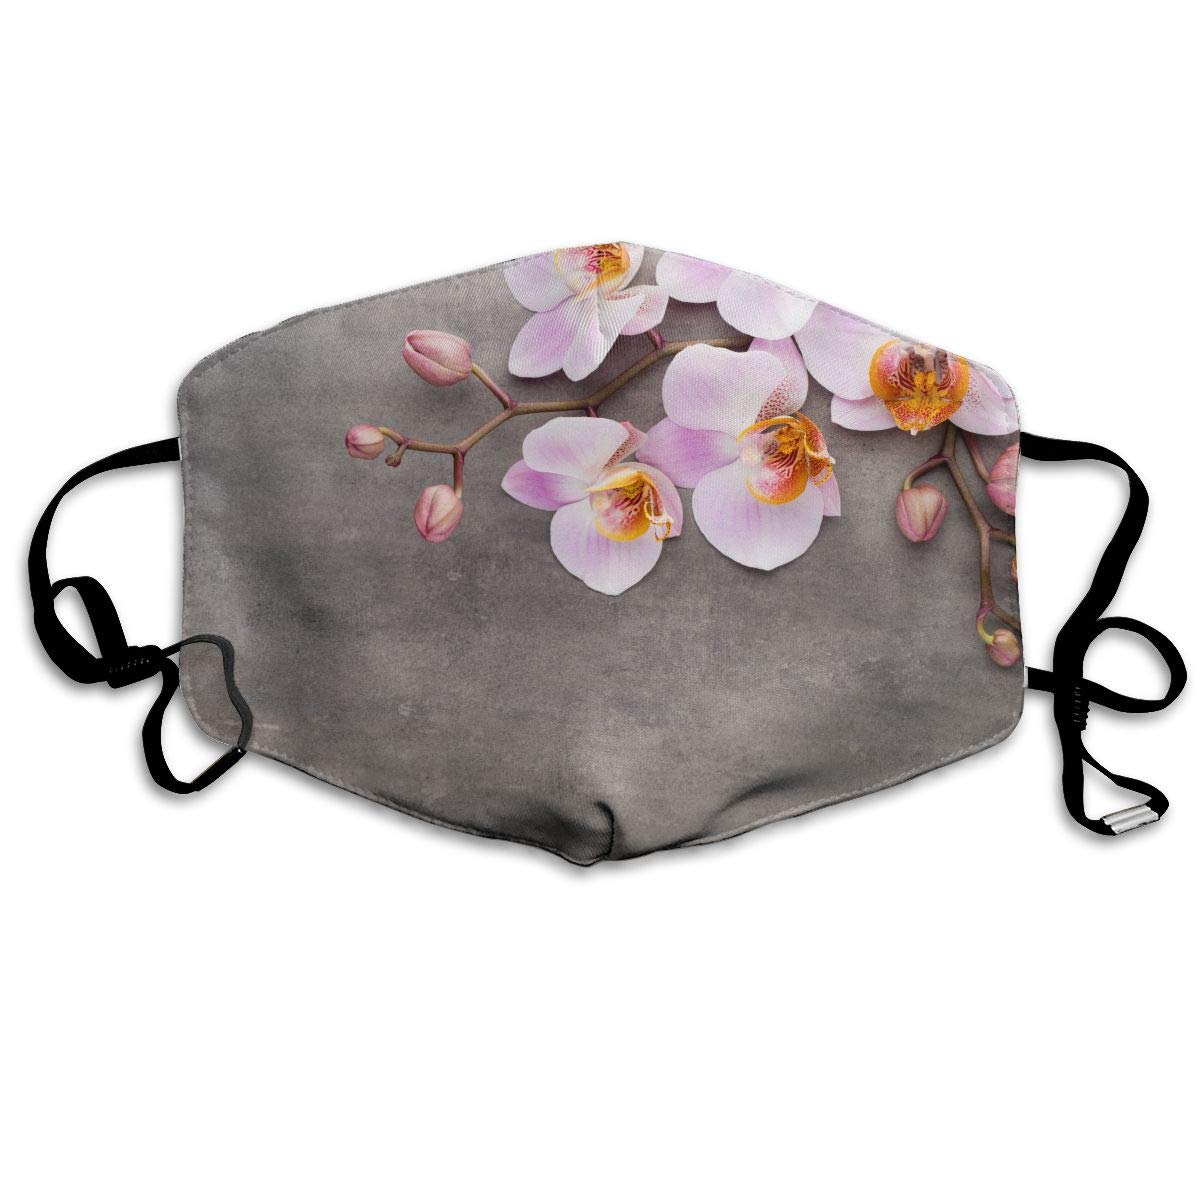 Unisex Orchid Flowers Printed Cotton Mouth-Masks Face Mask Polyester Anti-dust Masks